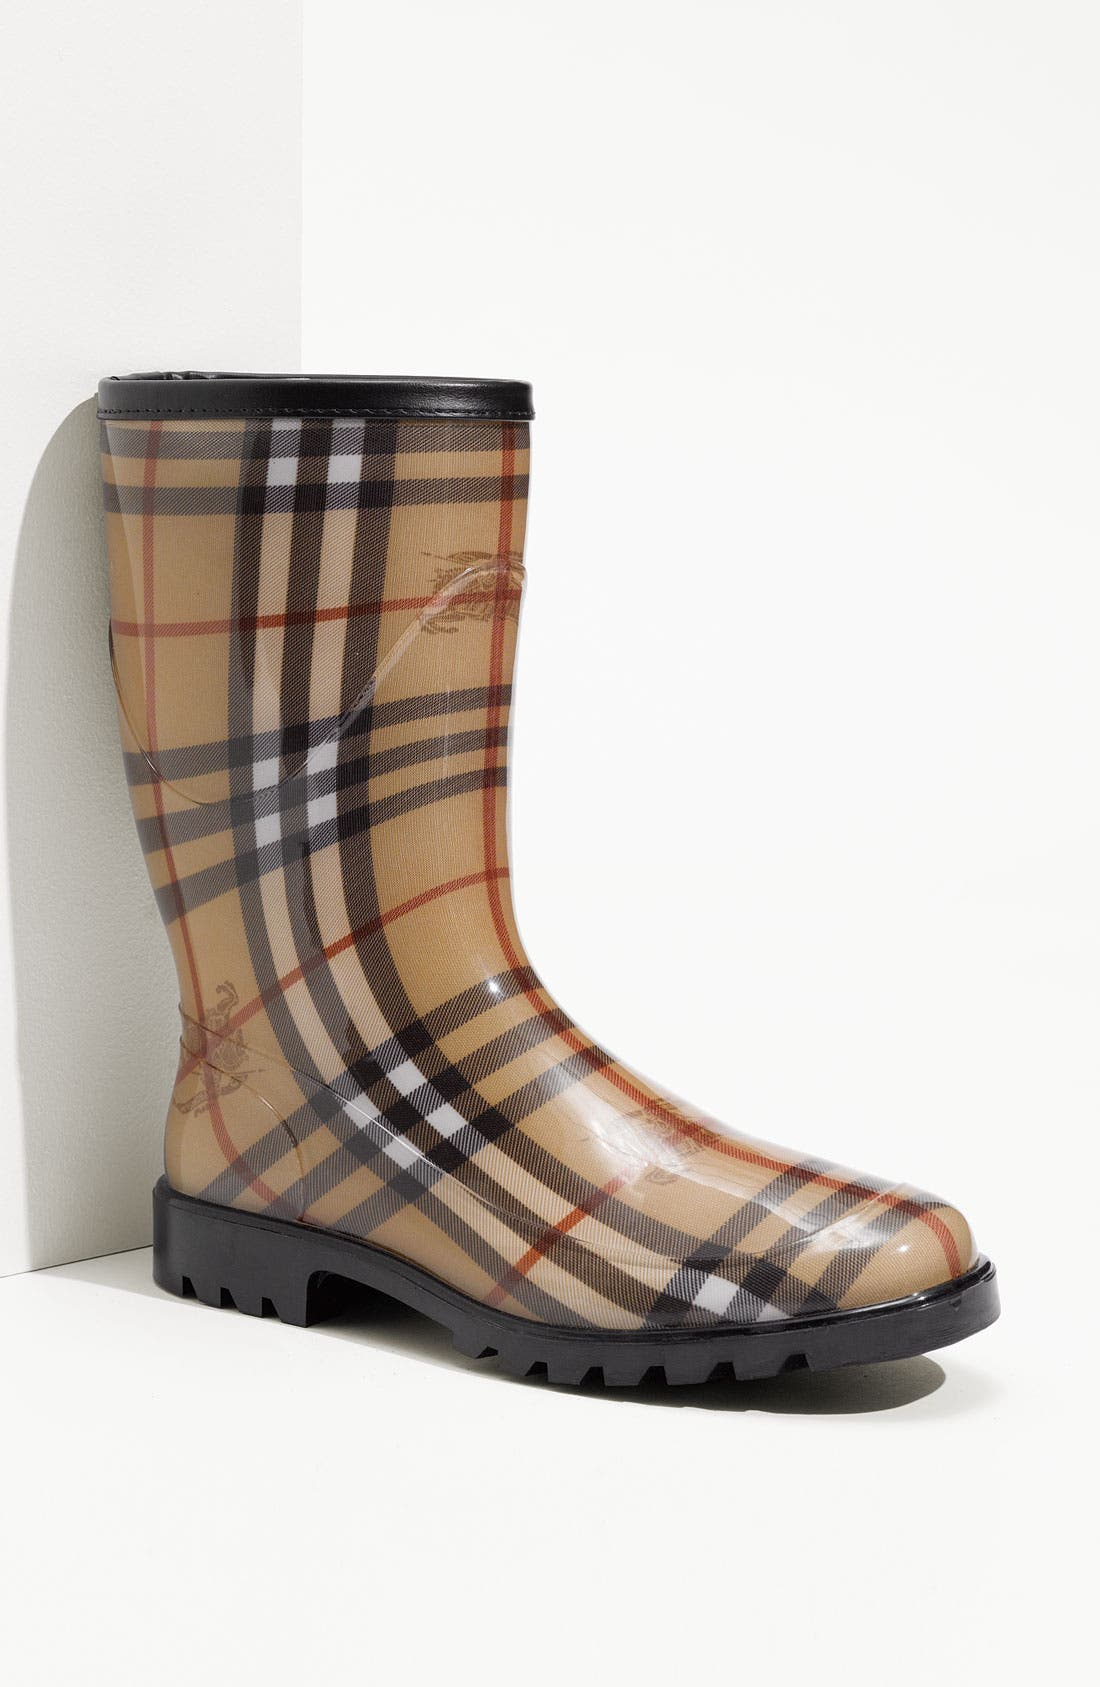 Main Image - Burberry Check Print Rain Boot